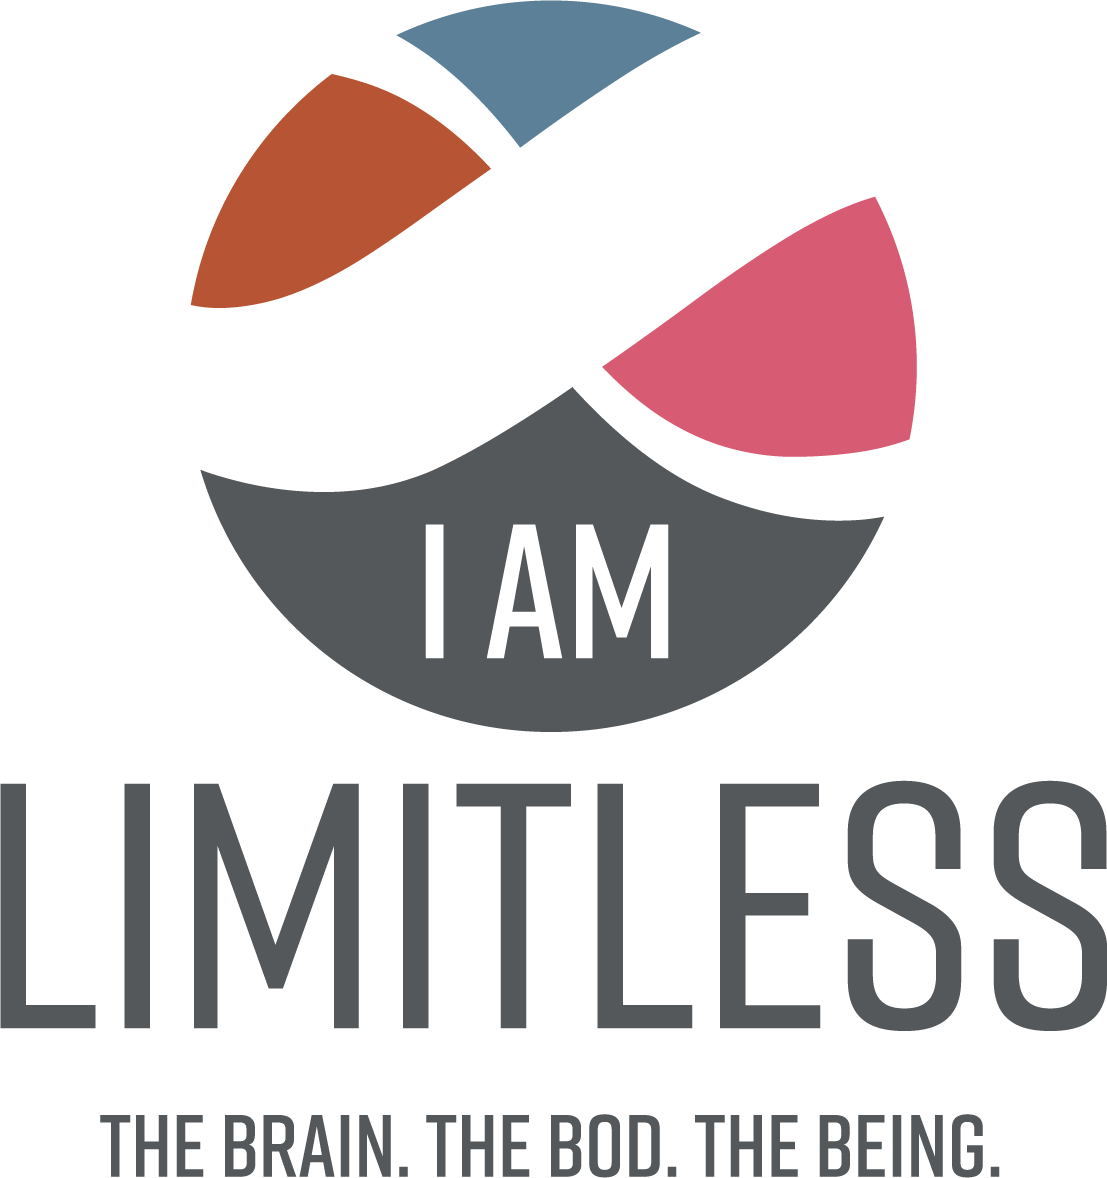 I AM Limitless